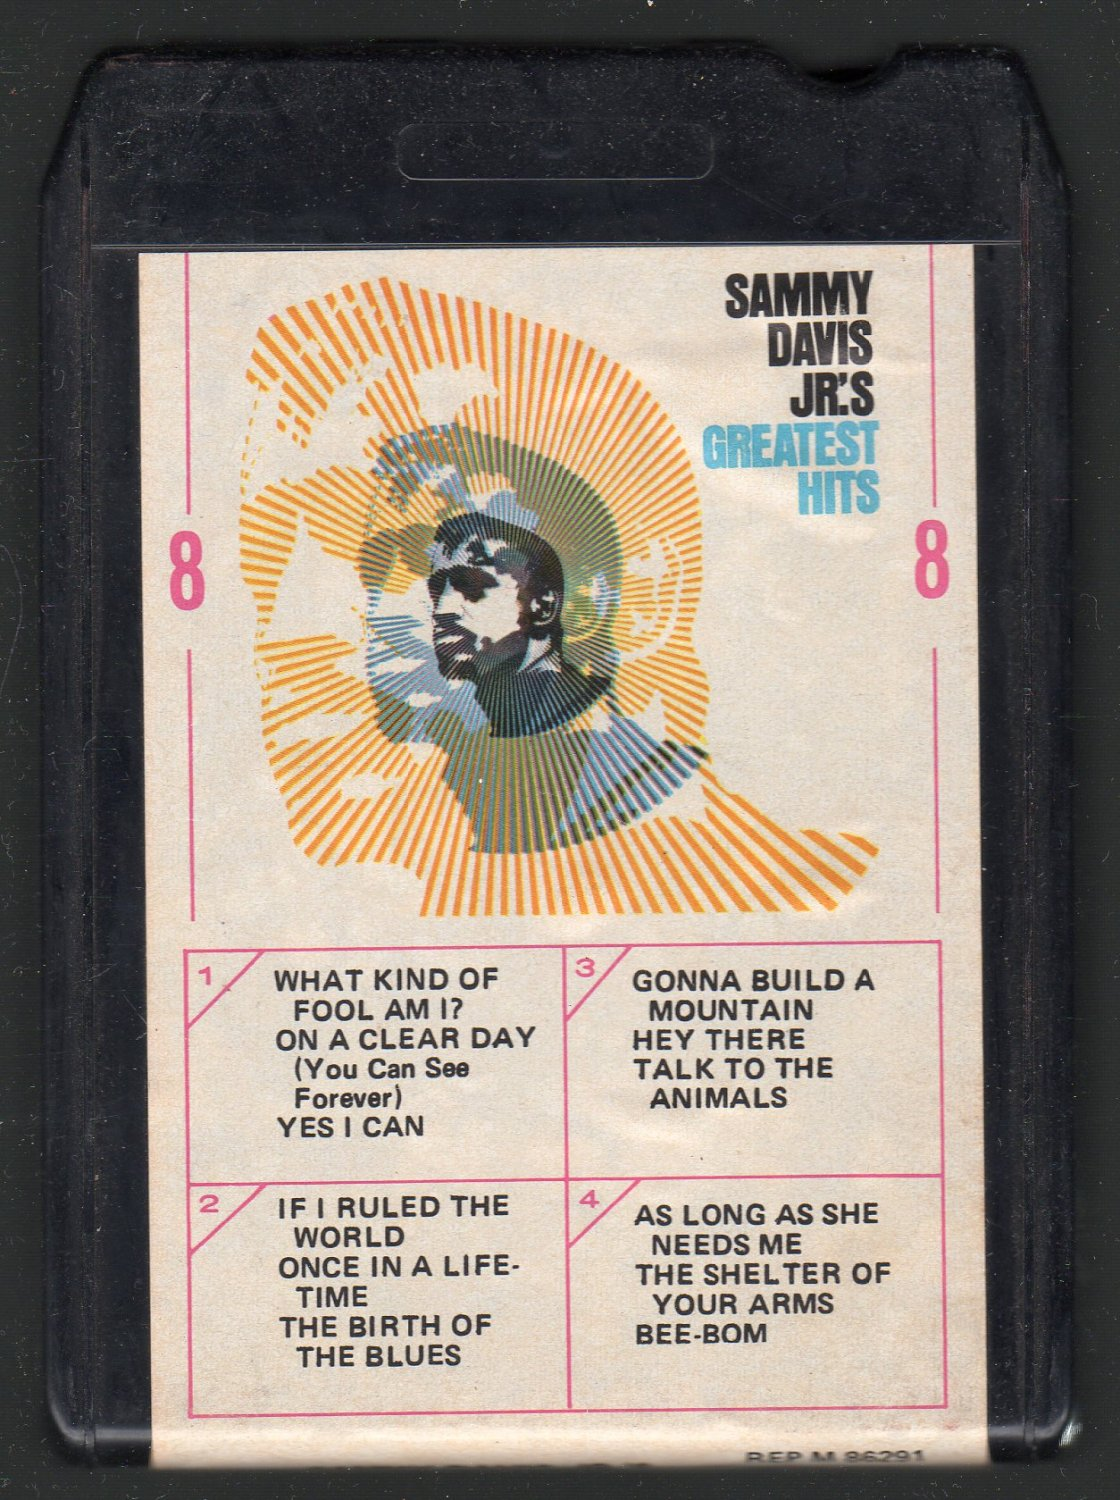 Sammy Davis Jr. - Greatest Hits Reprise 8-track tape